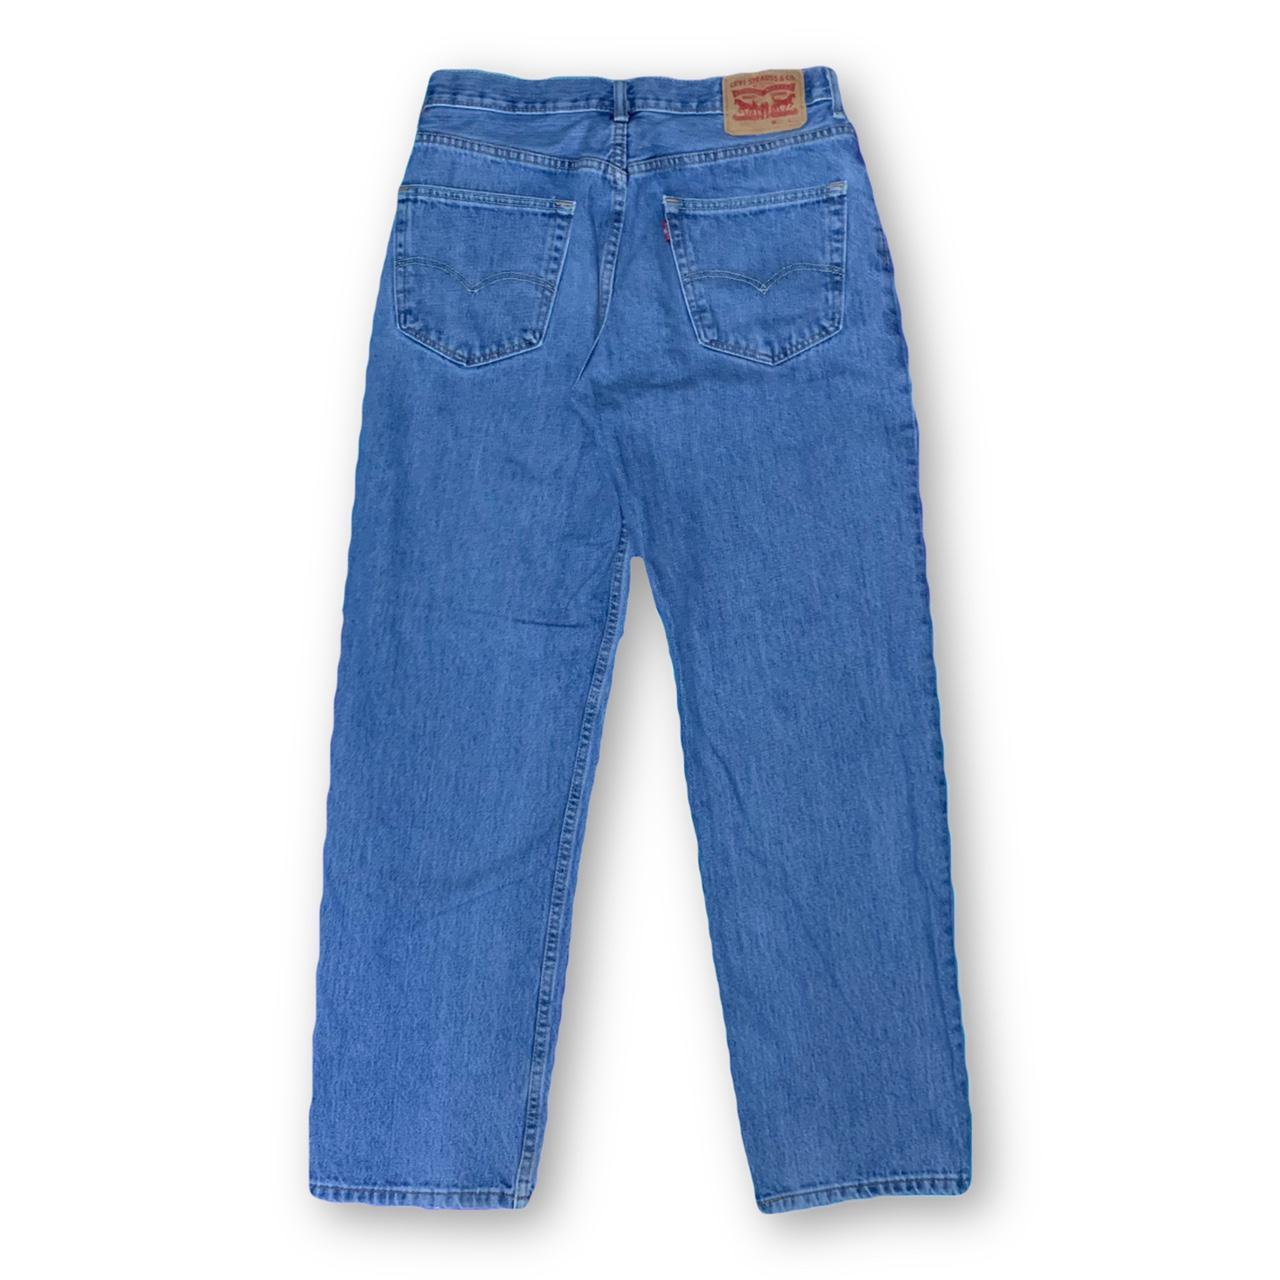 Product Image 1 - Levi's 550 Jeans  - Great Condition! -